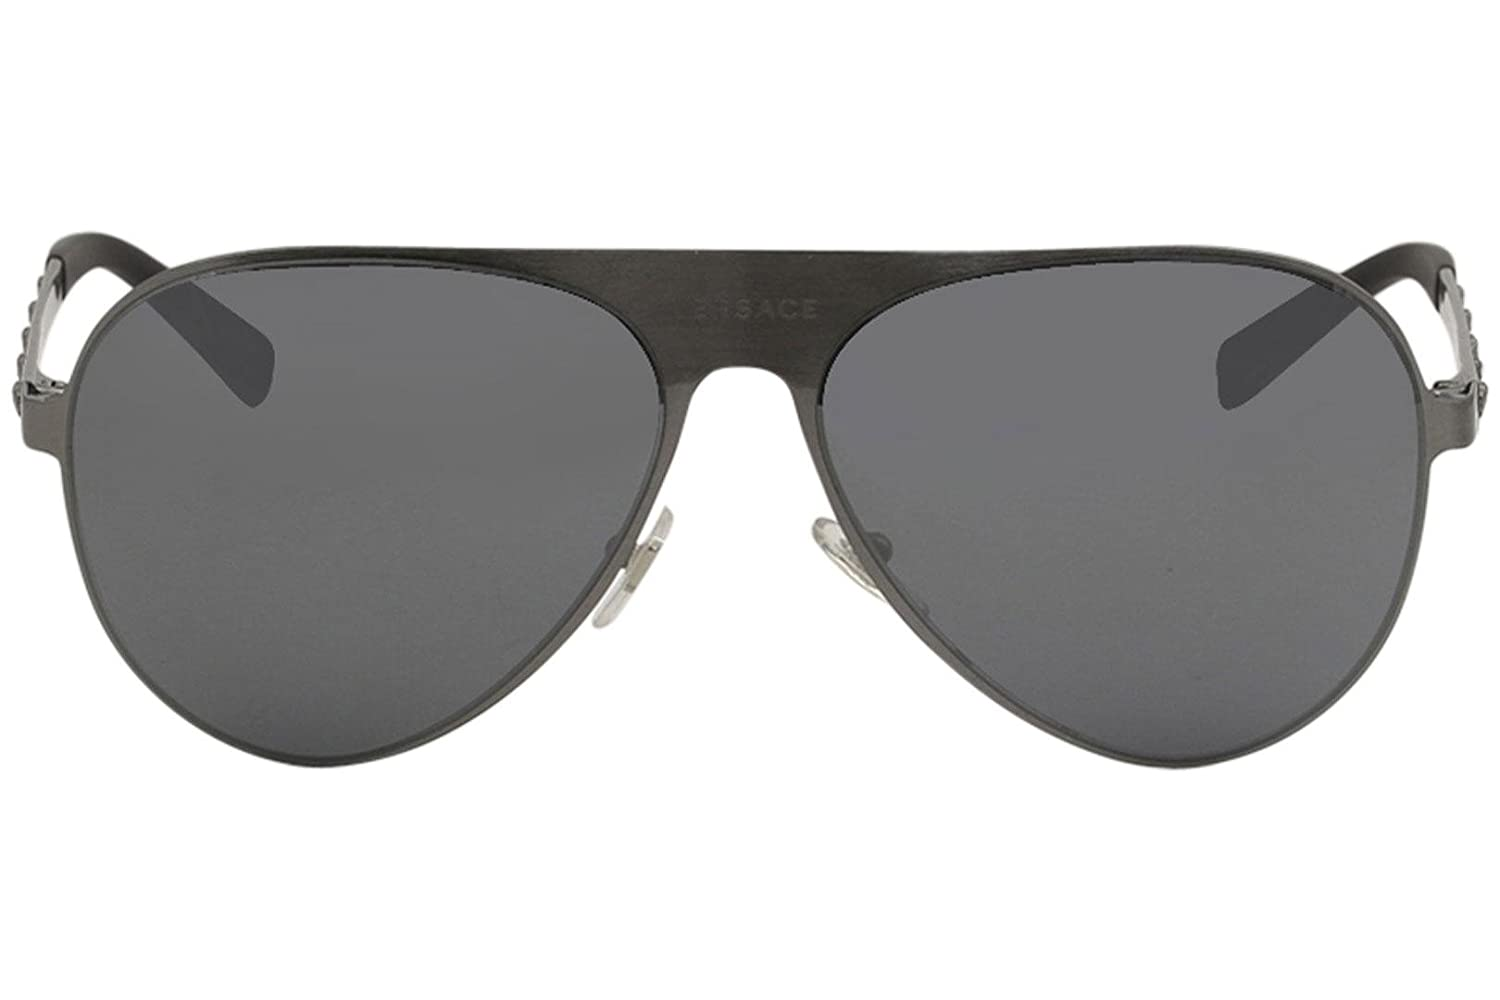 42475922e4c6f Versace Unisex VE2189 Brushed Gunmetal Grey Mirror Black One Size   Amazon.in  Clothing   Accessories